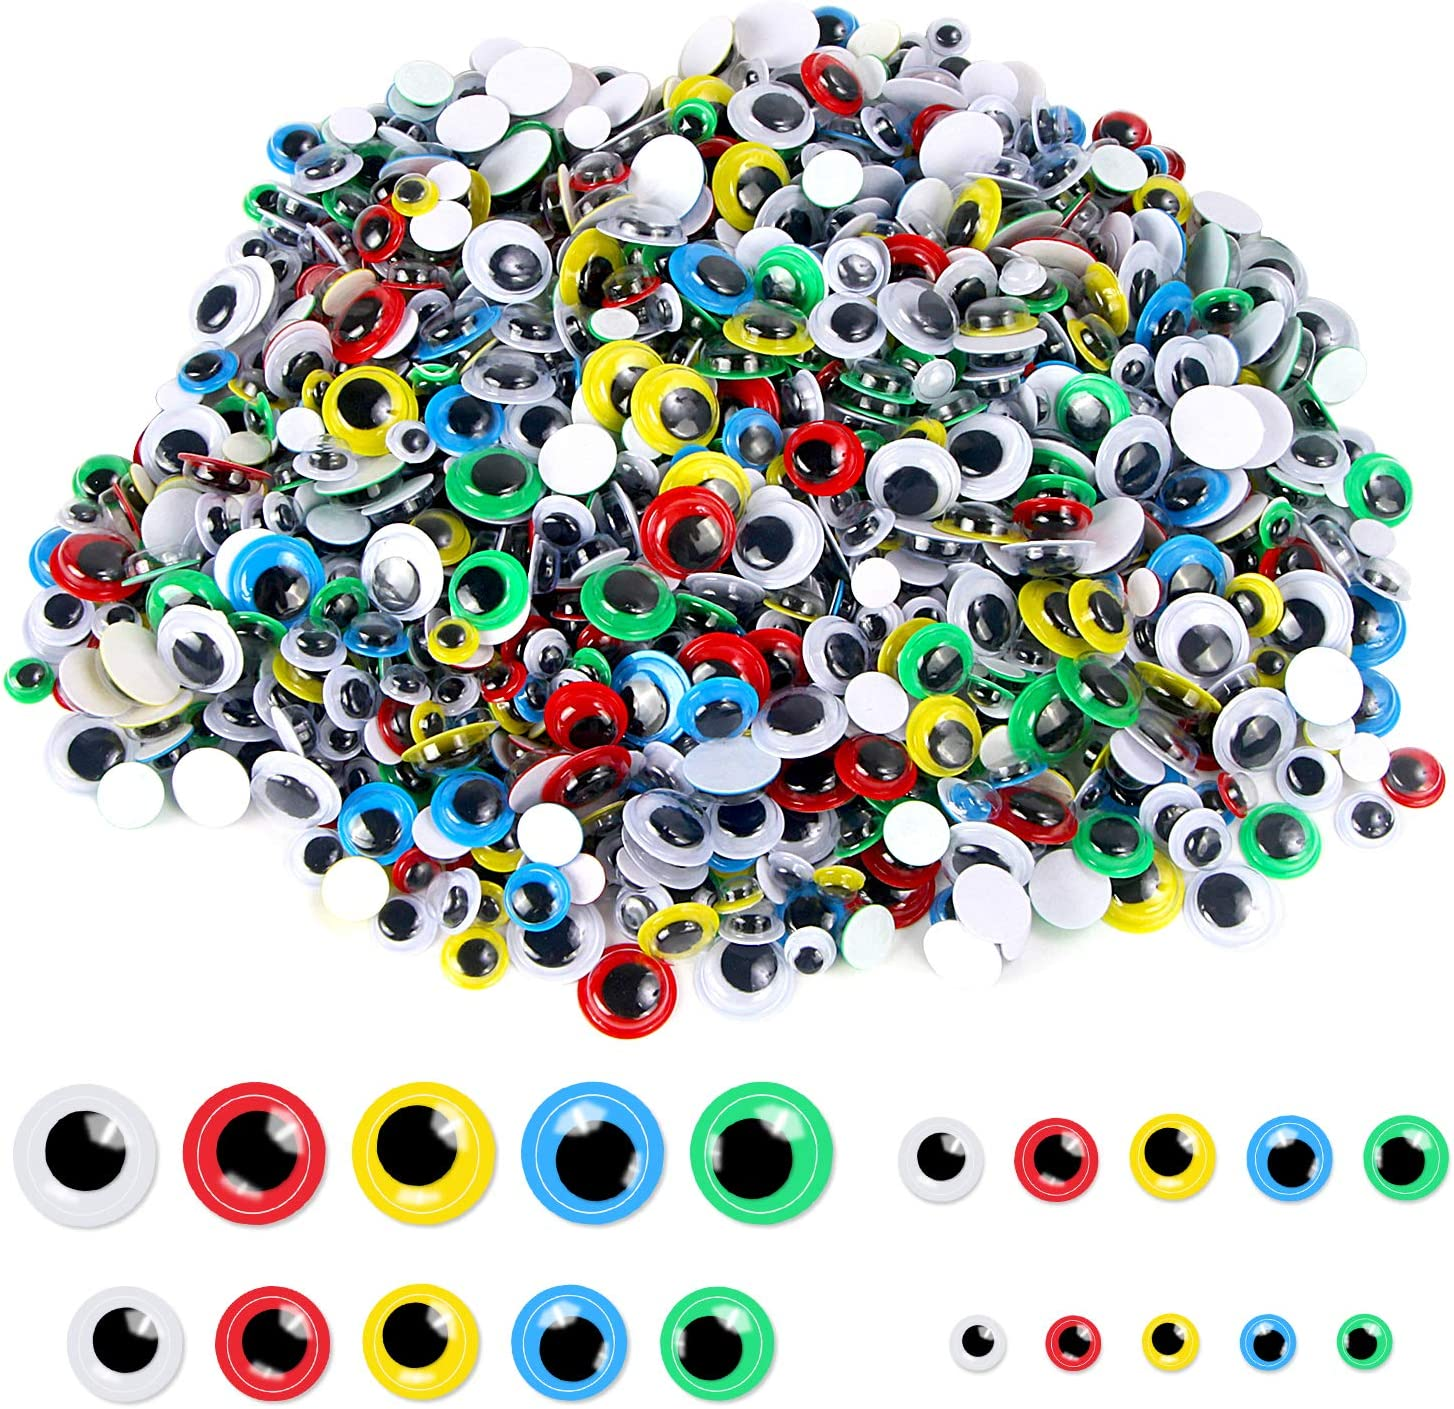 Upins 2000 Pcs Multicolor Wiggle Googly Eyes for Easter Day with Self-Adhesive,4 Sizes Mixed Packaging